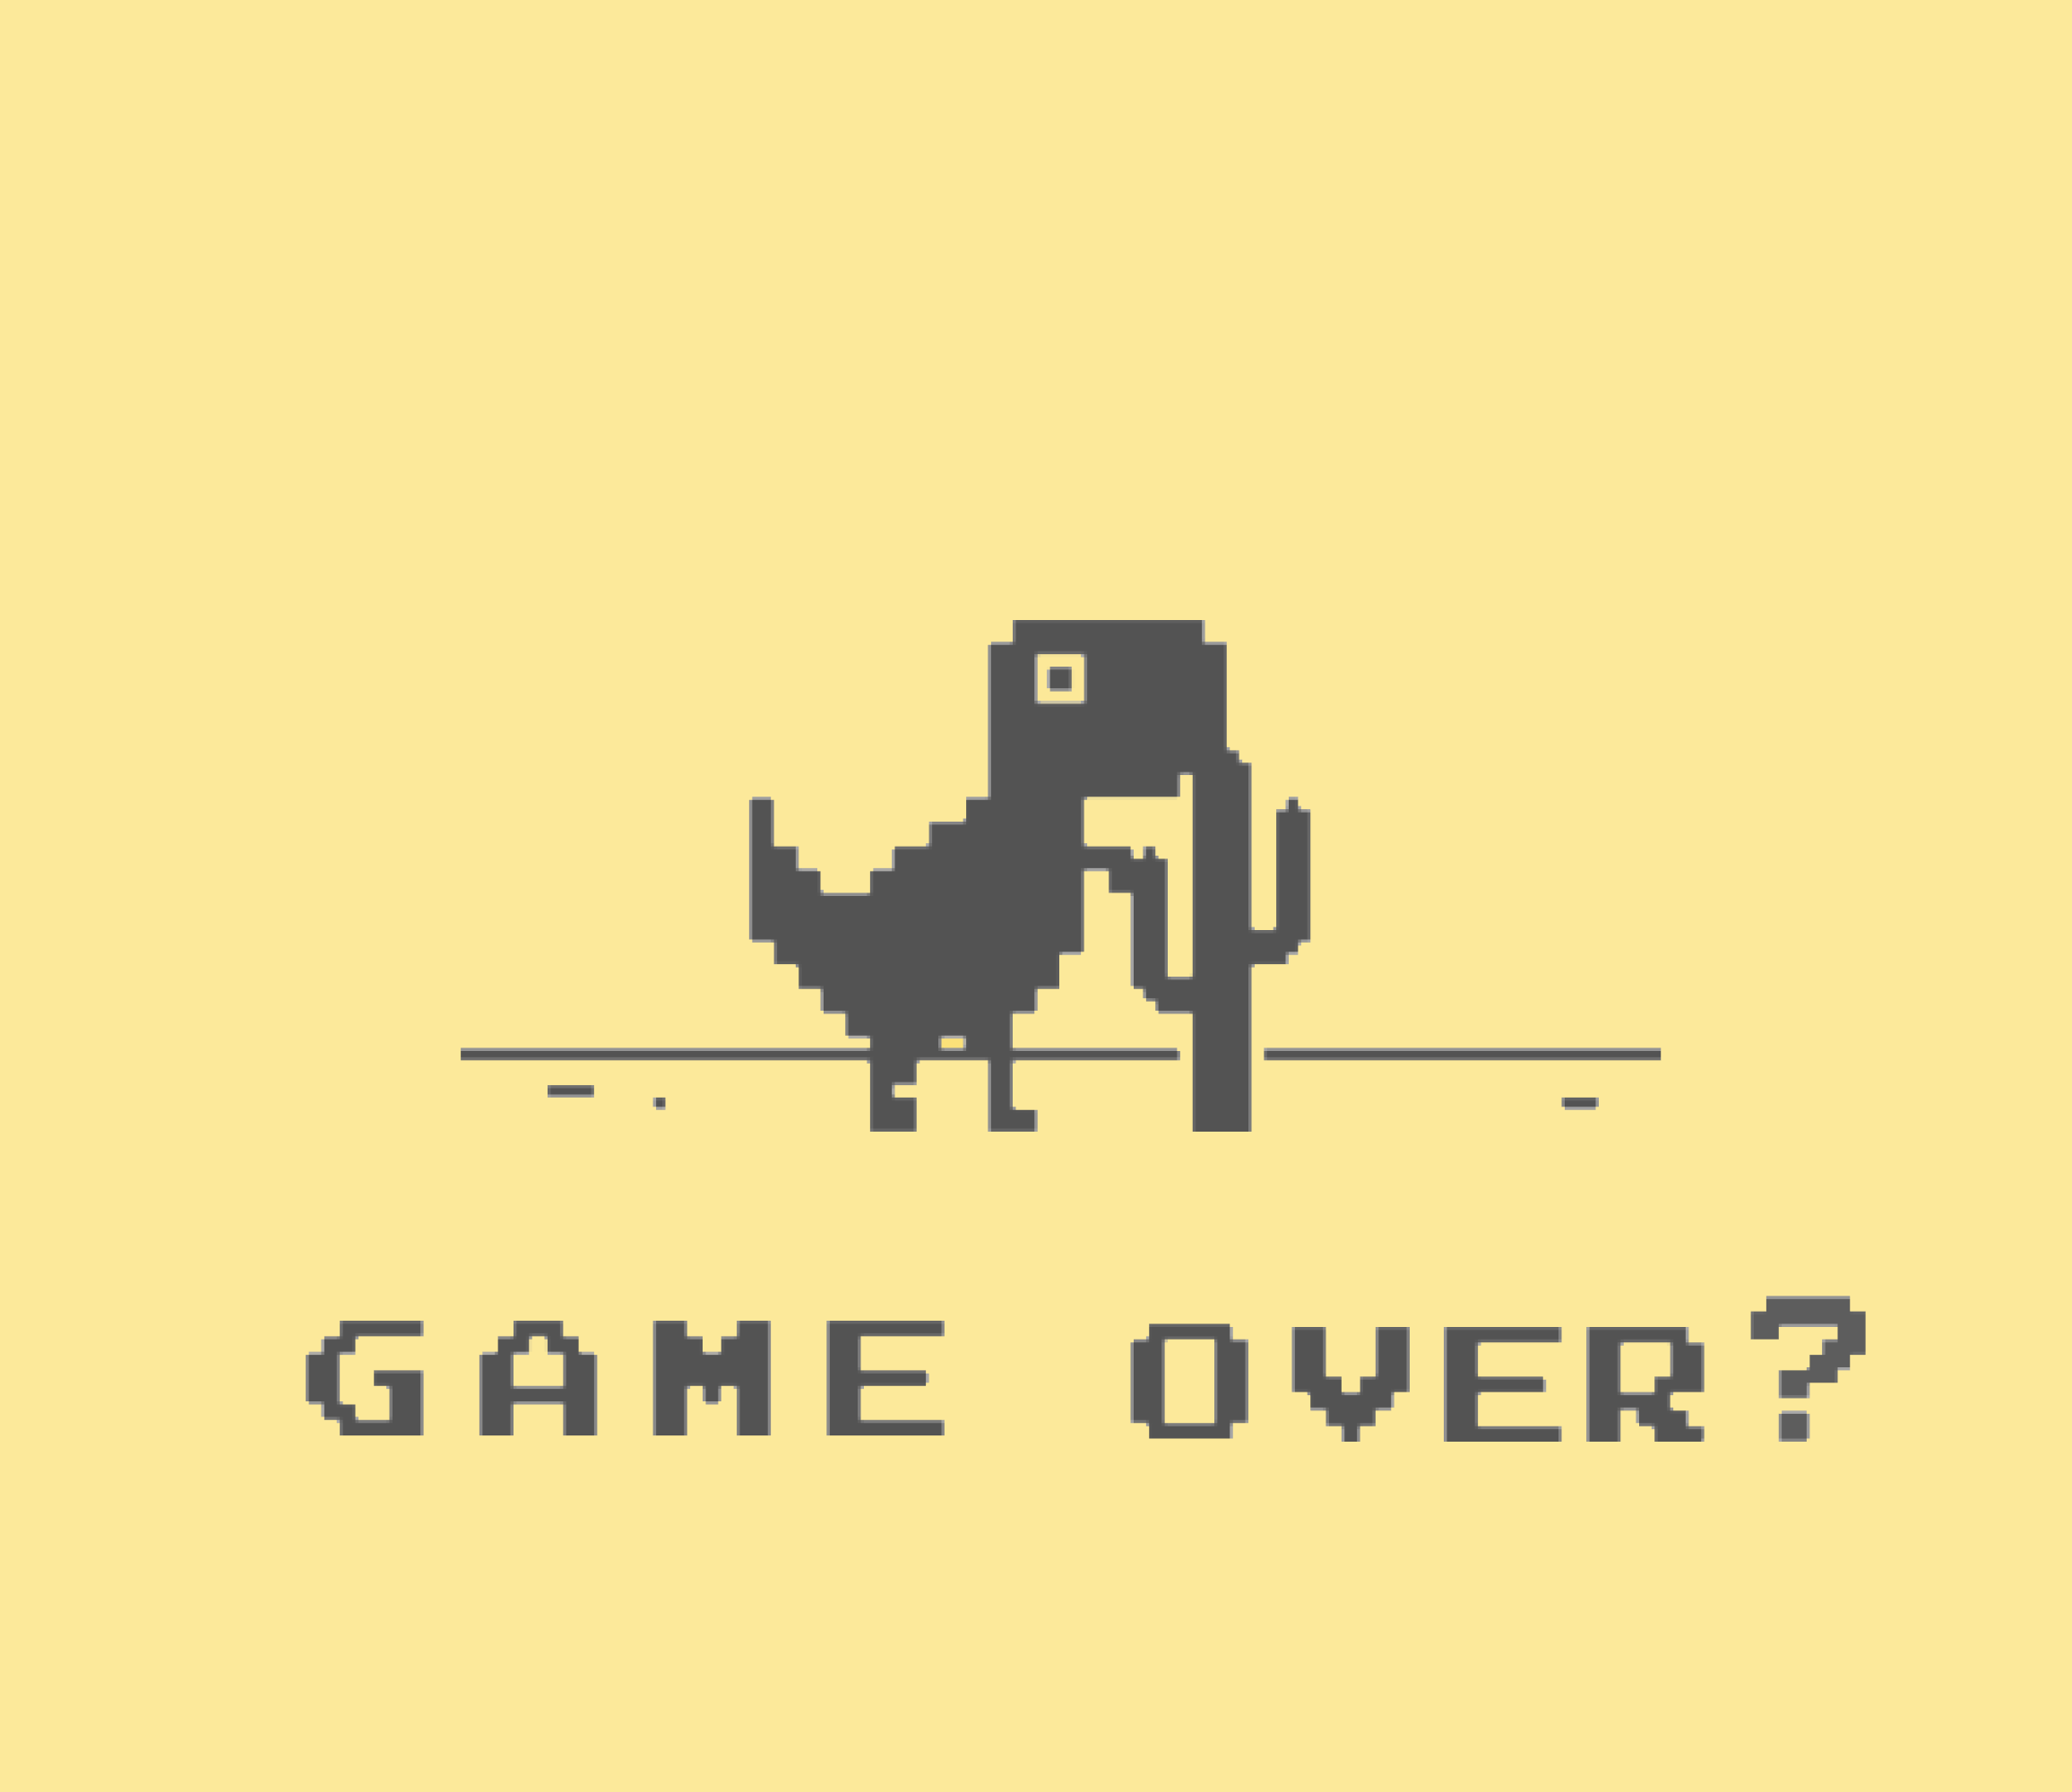 game-over-?